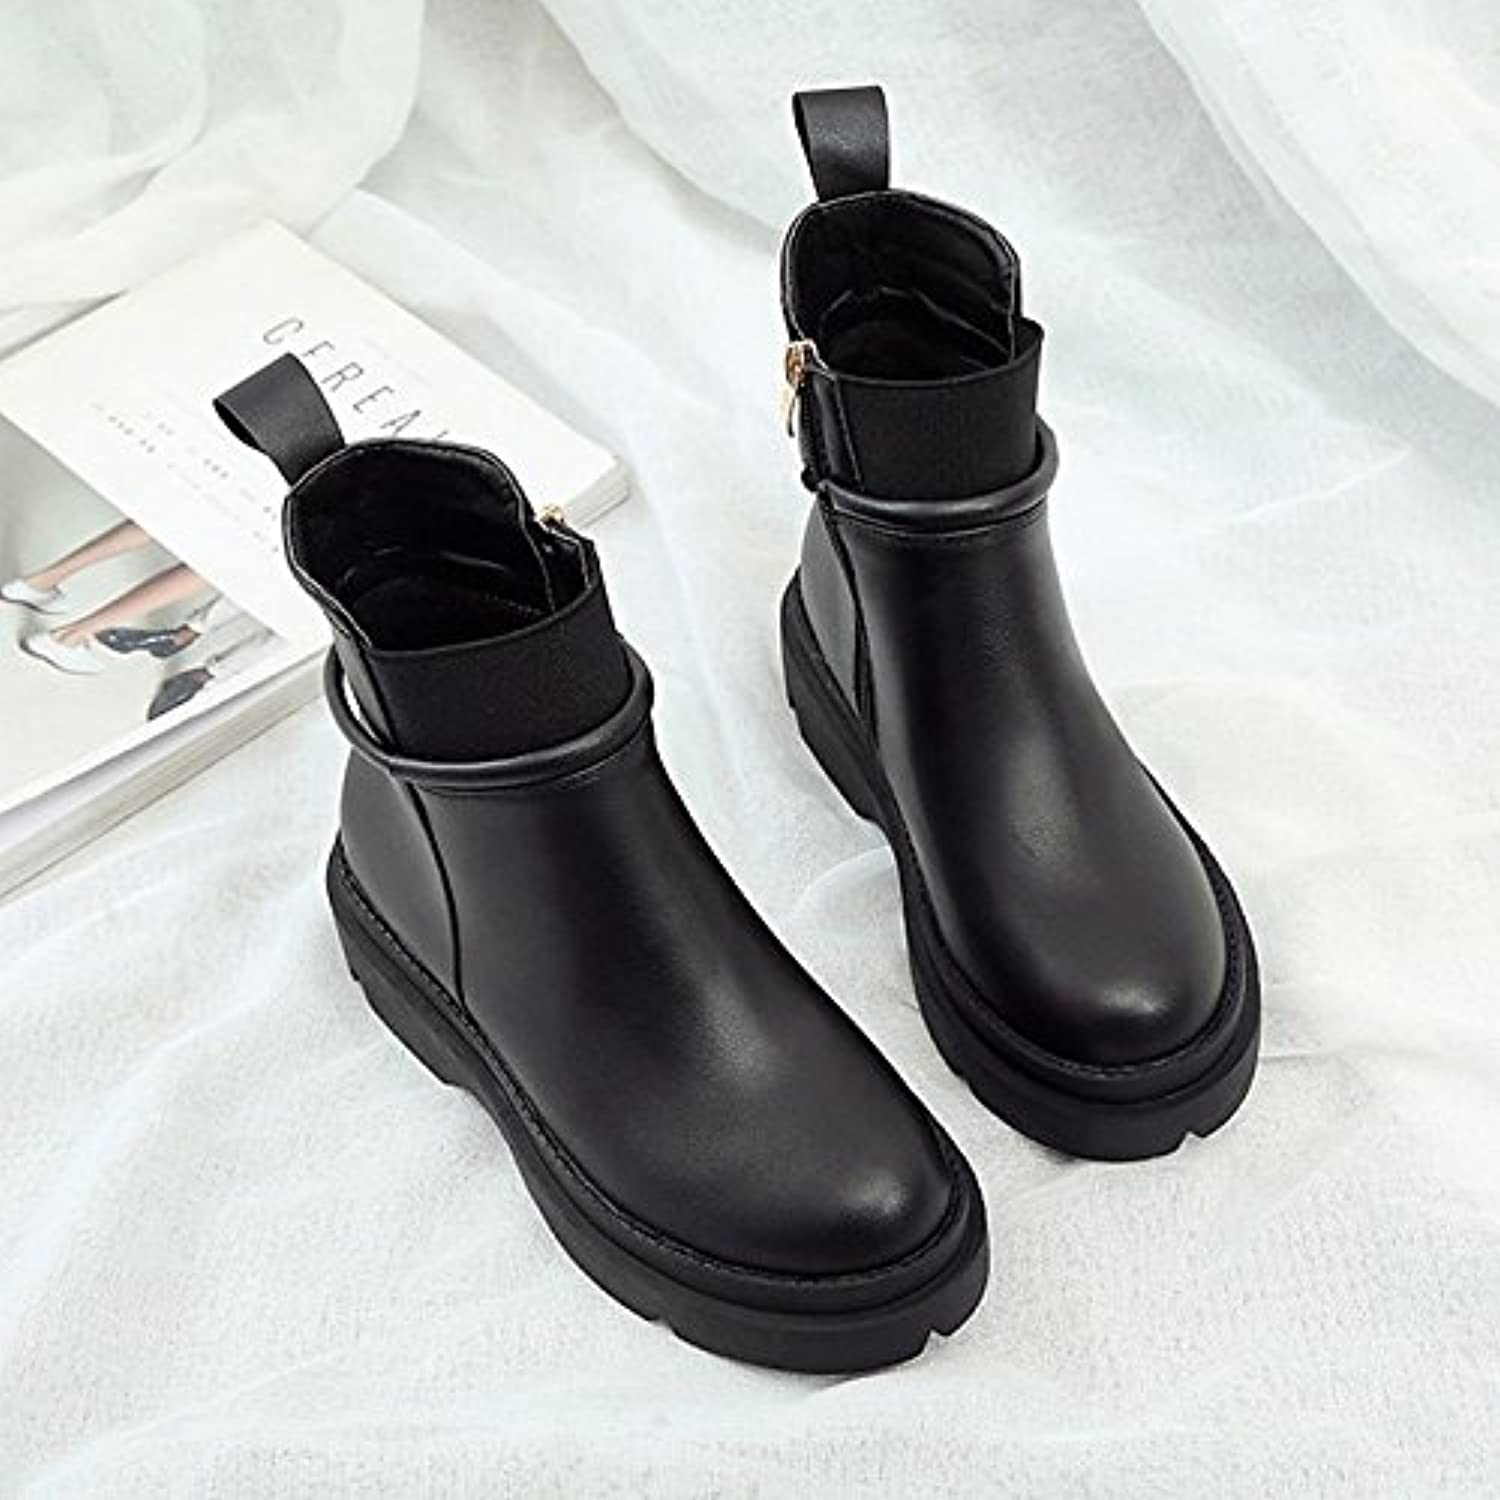 HSXZ Women's shoes PU Winter Fashion Boots Bootie Boots Platform Round Toe Booties Ankle Boots for Casual Office\Career Black